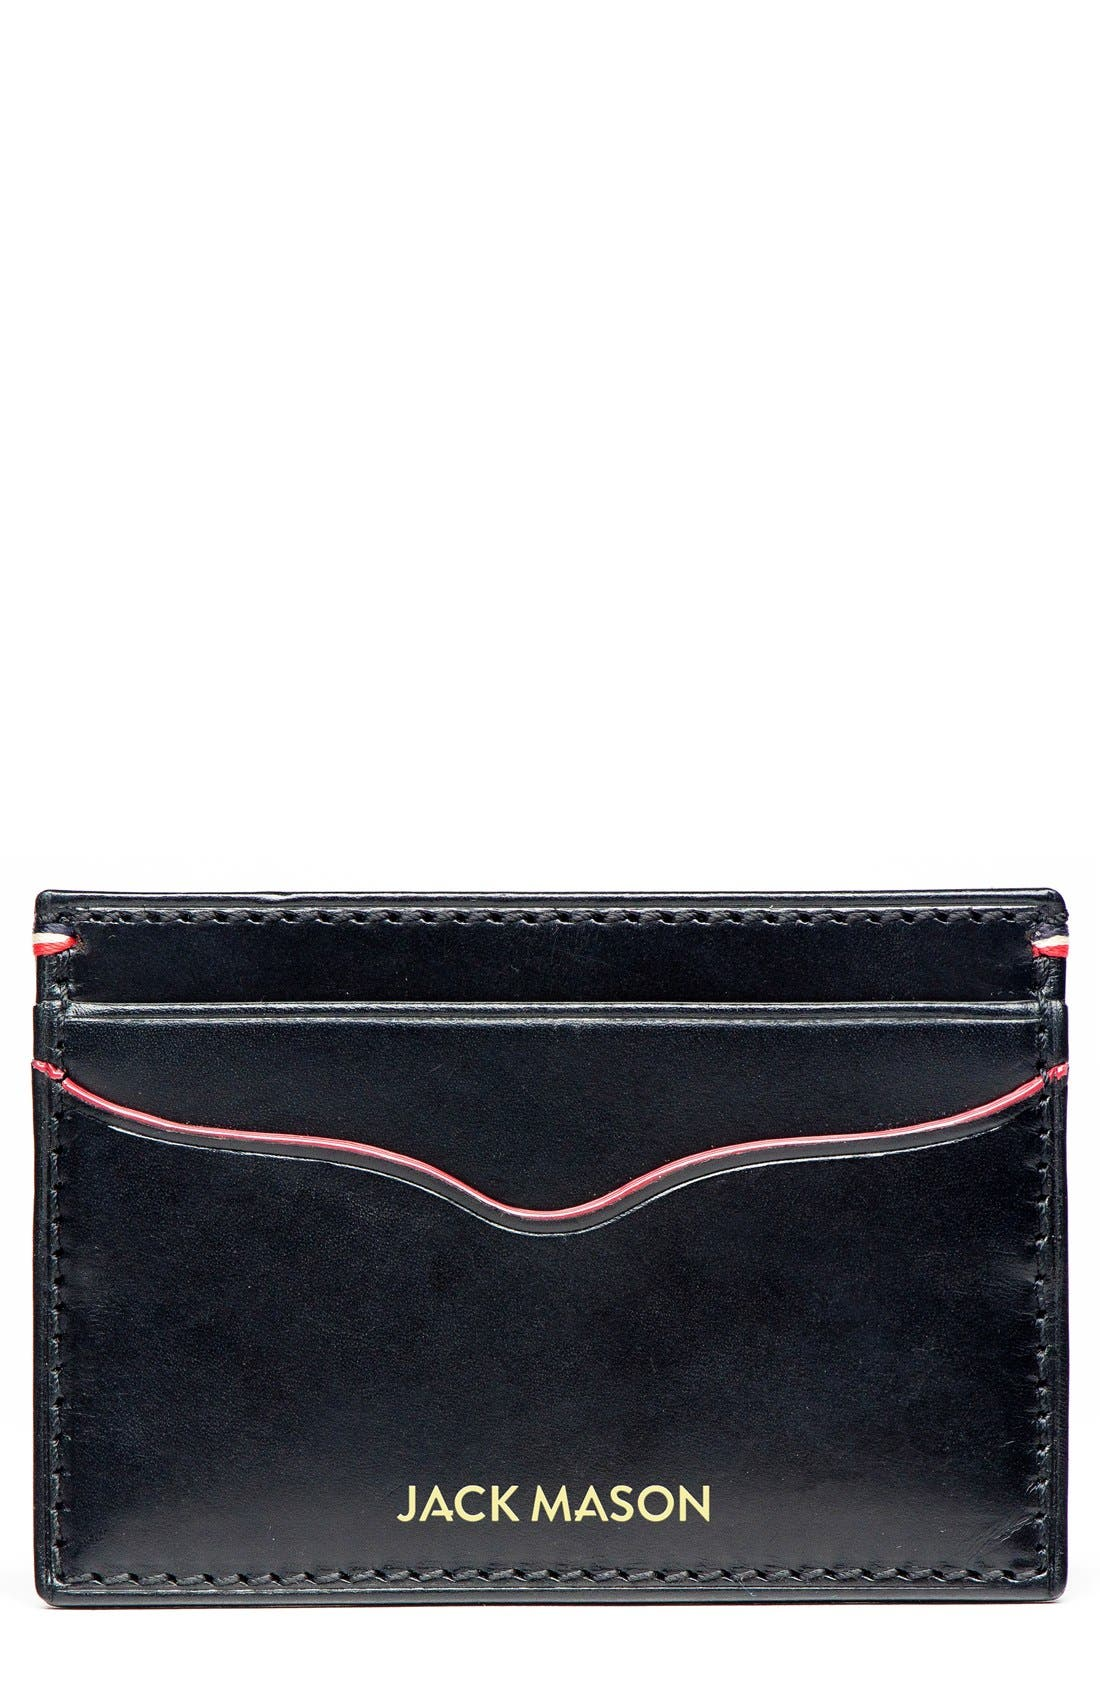 Main Image - Jack Mason Vacchetta Lux Leather Card Case